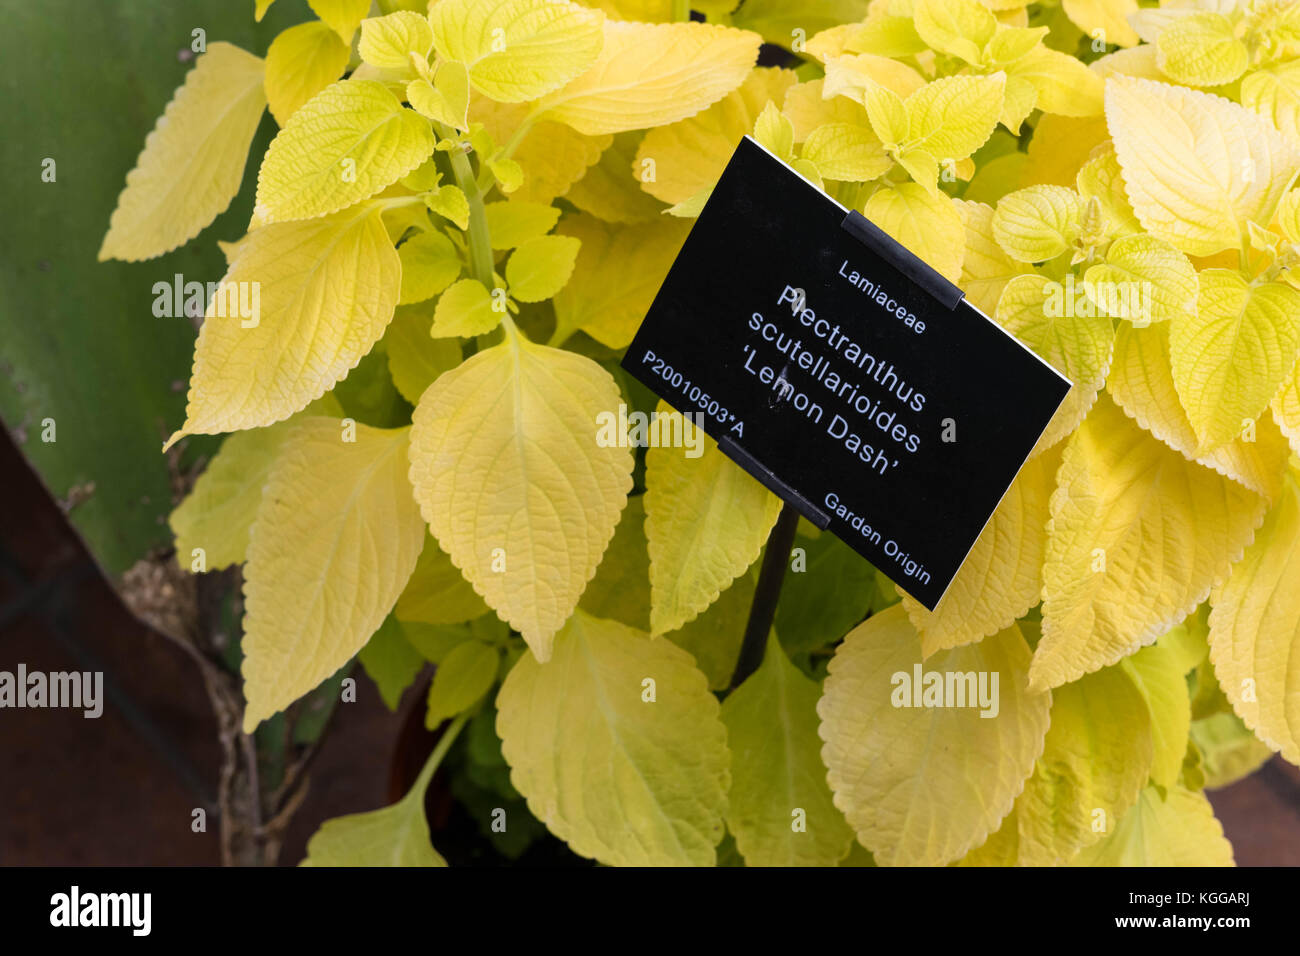 Plectranthus scutellarioides , lemon dash, compact low growing cultivar with golden green broad leaves. Stock Photo